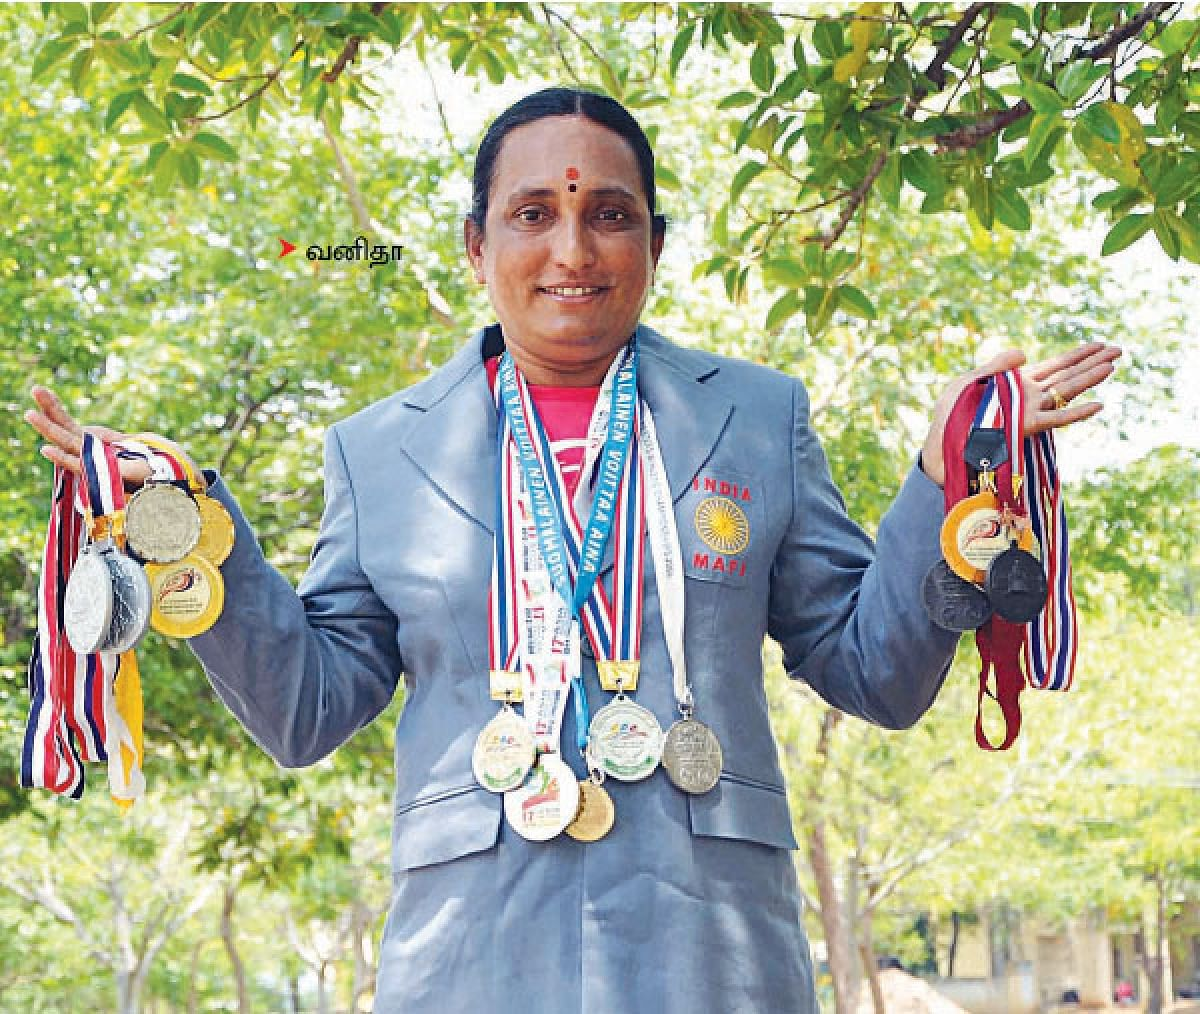 with Medals